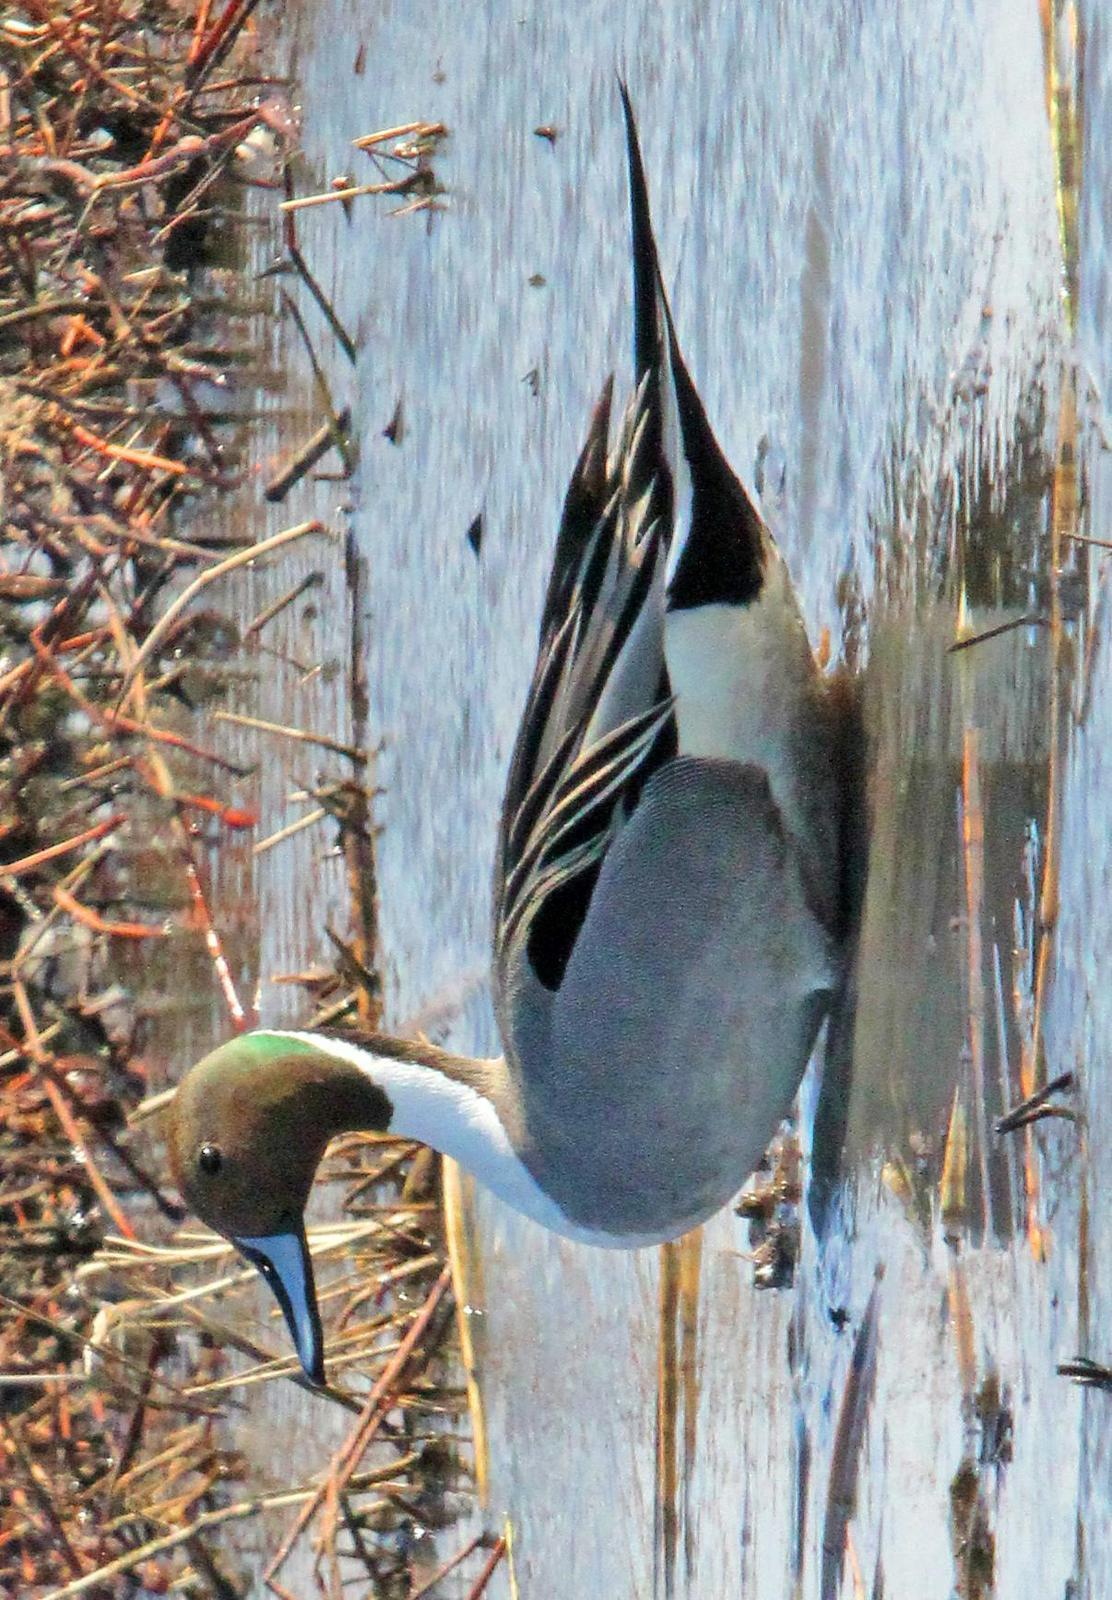 Northern Pintail Photo by Tom Gannon